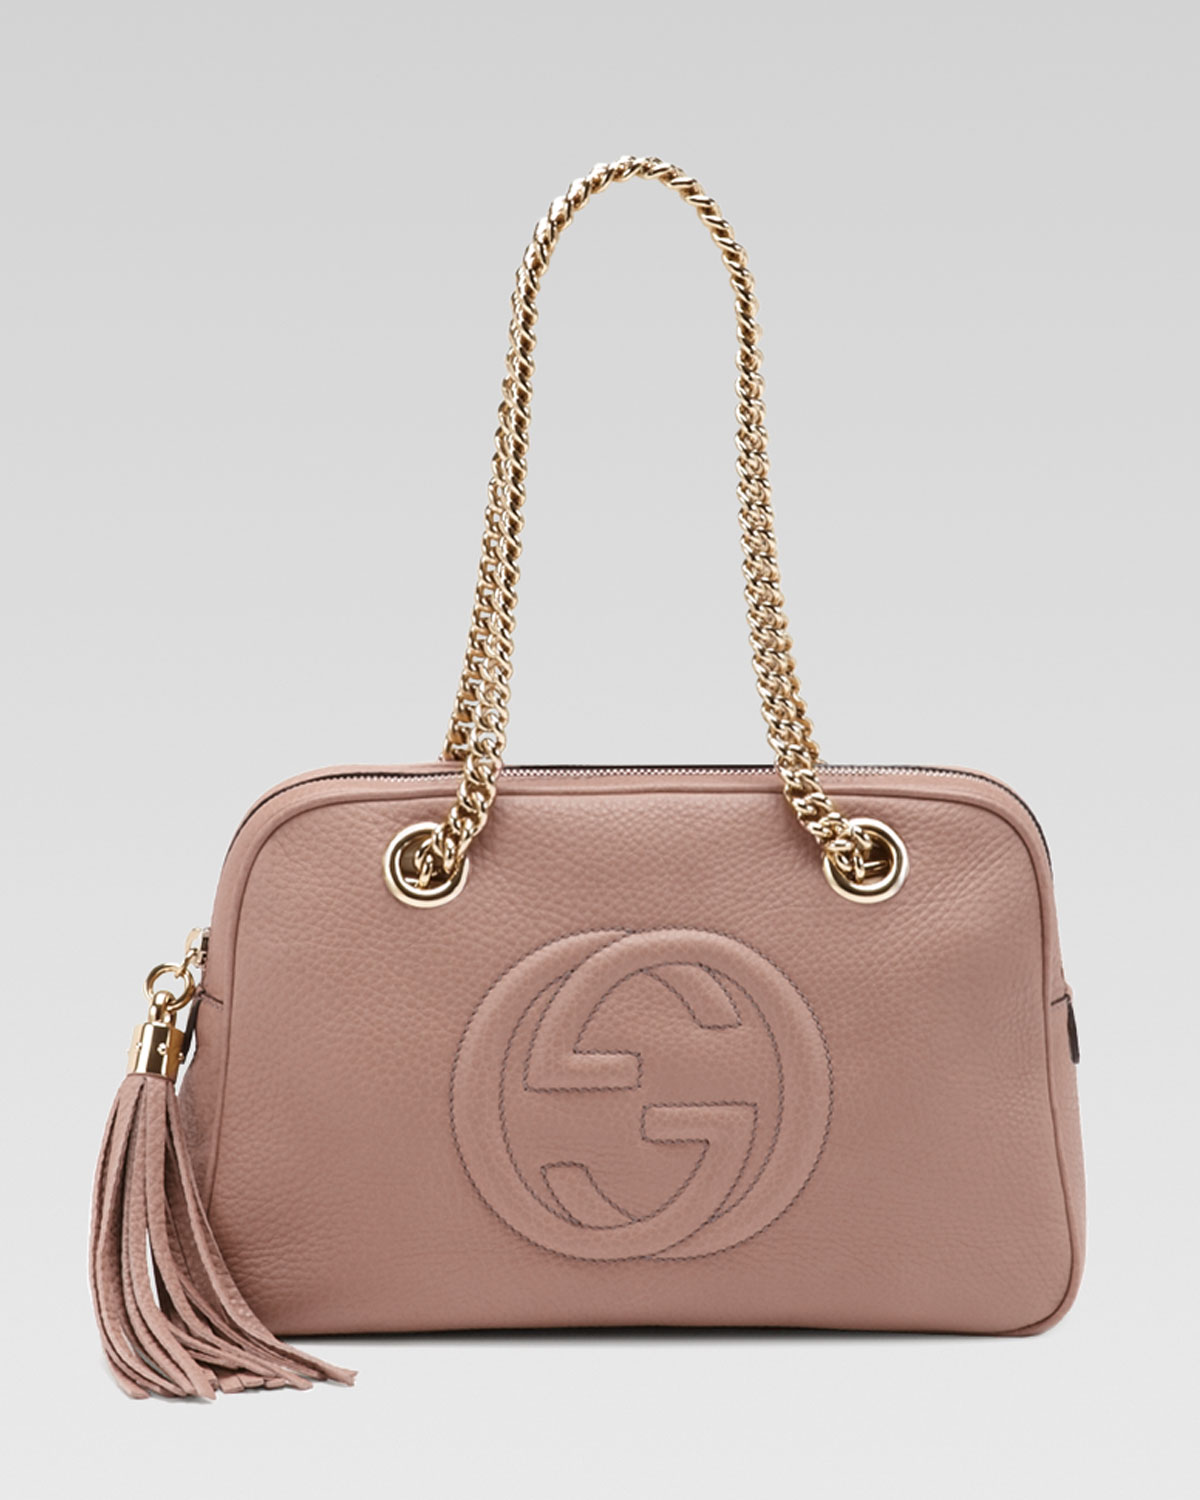 7e65f242ee7b Gucci Soho Leather Doublechainstrap Shoulder Bag Dark Cipria in Pink ...